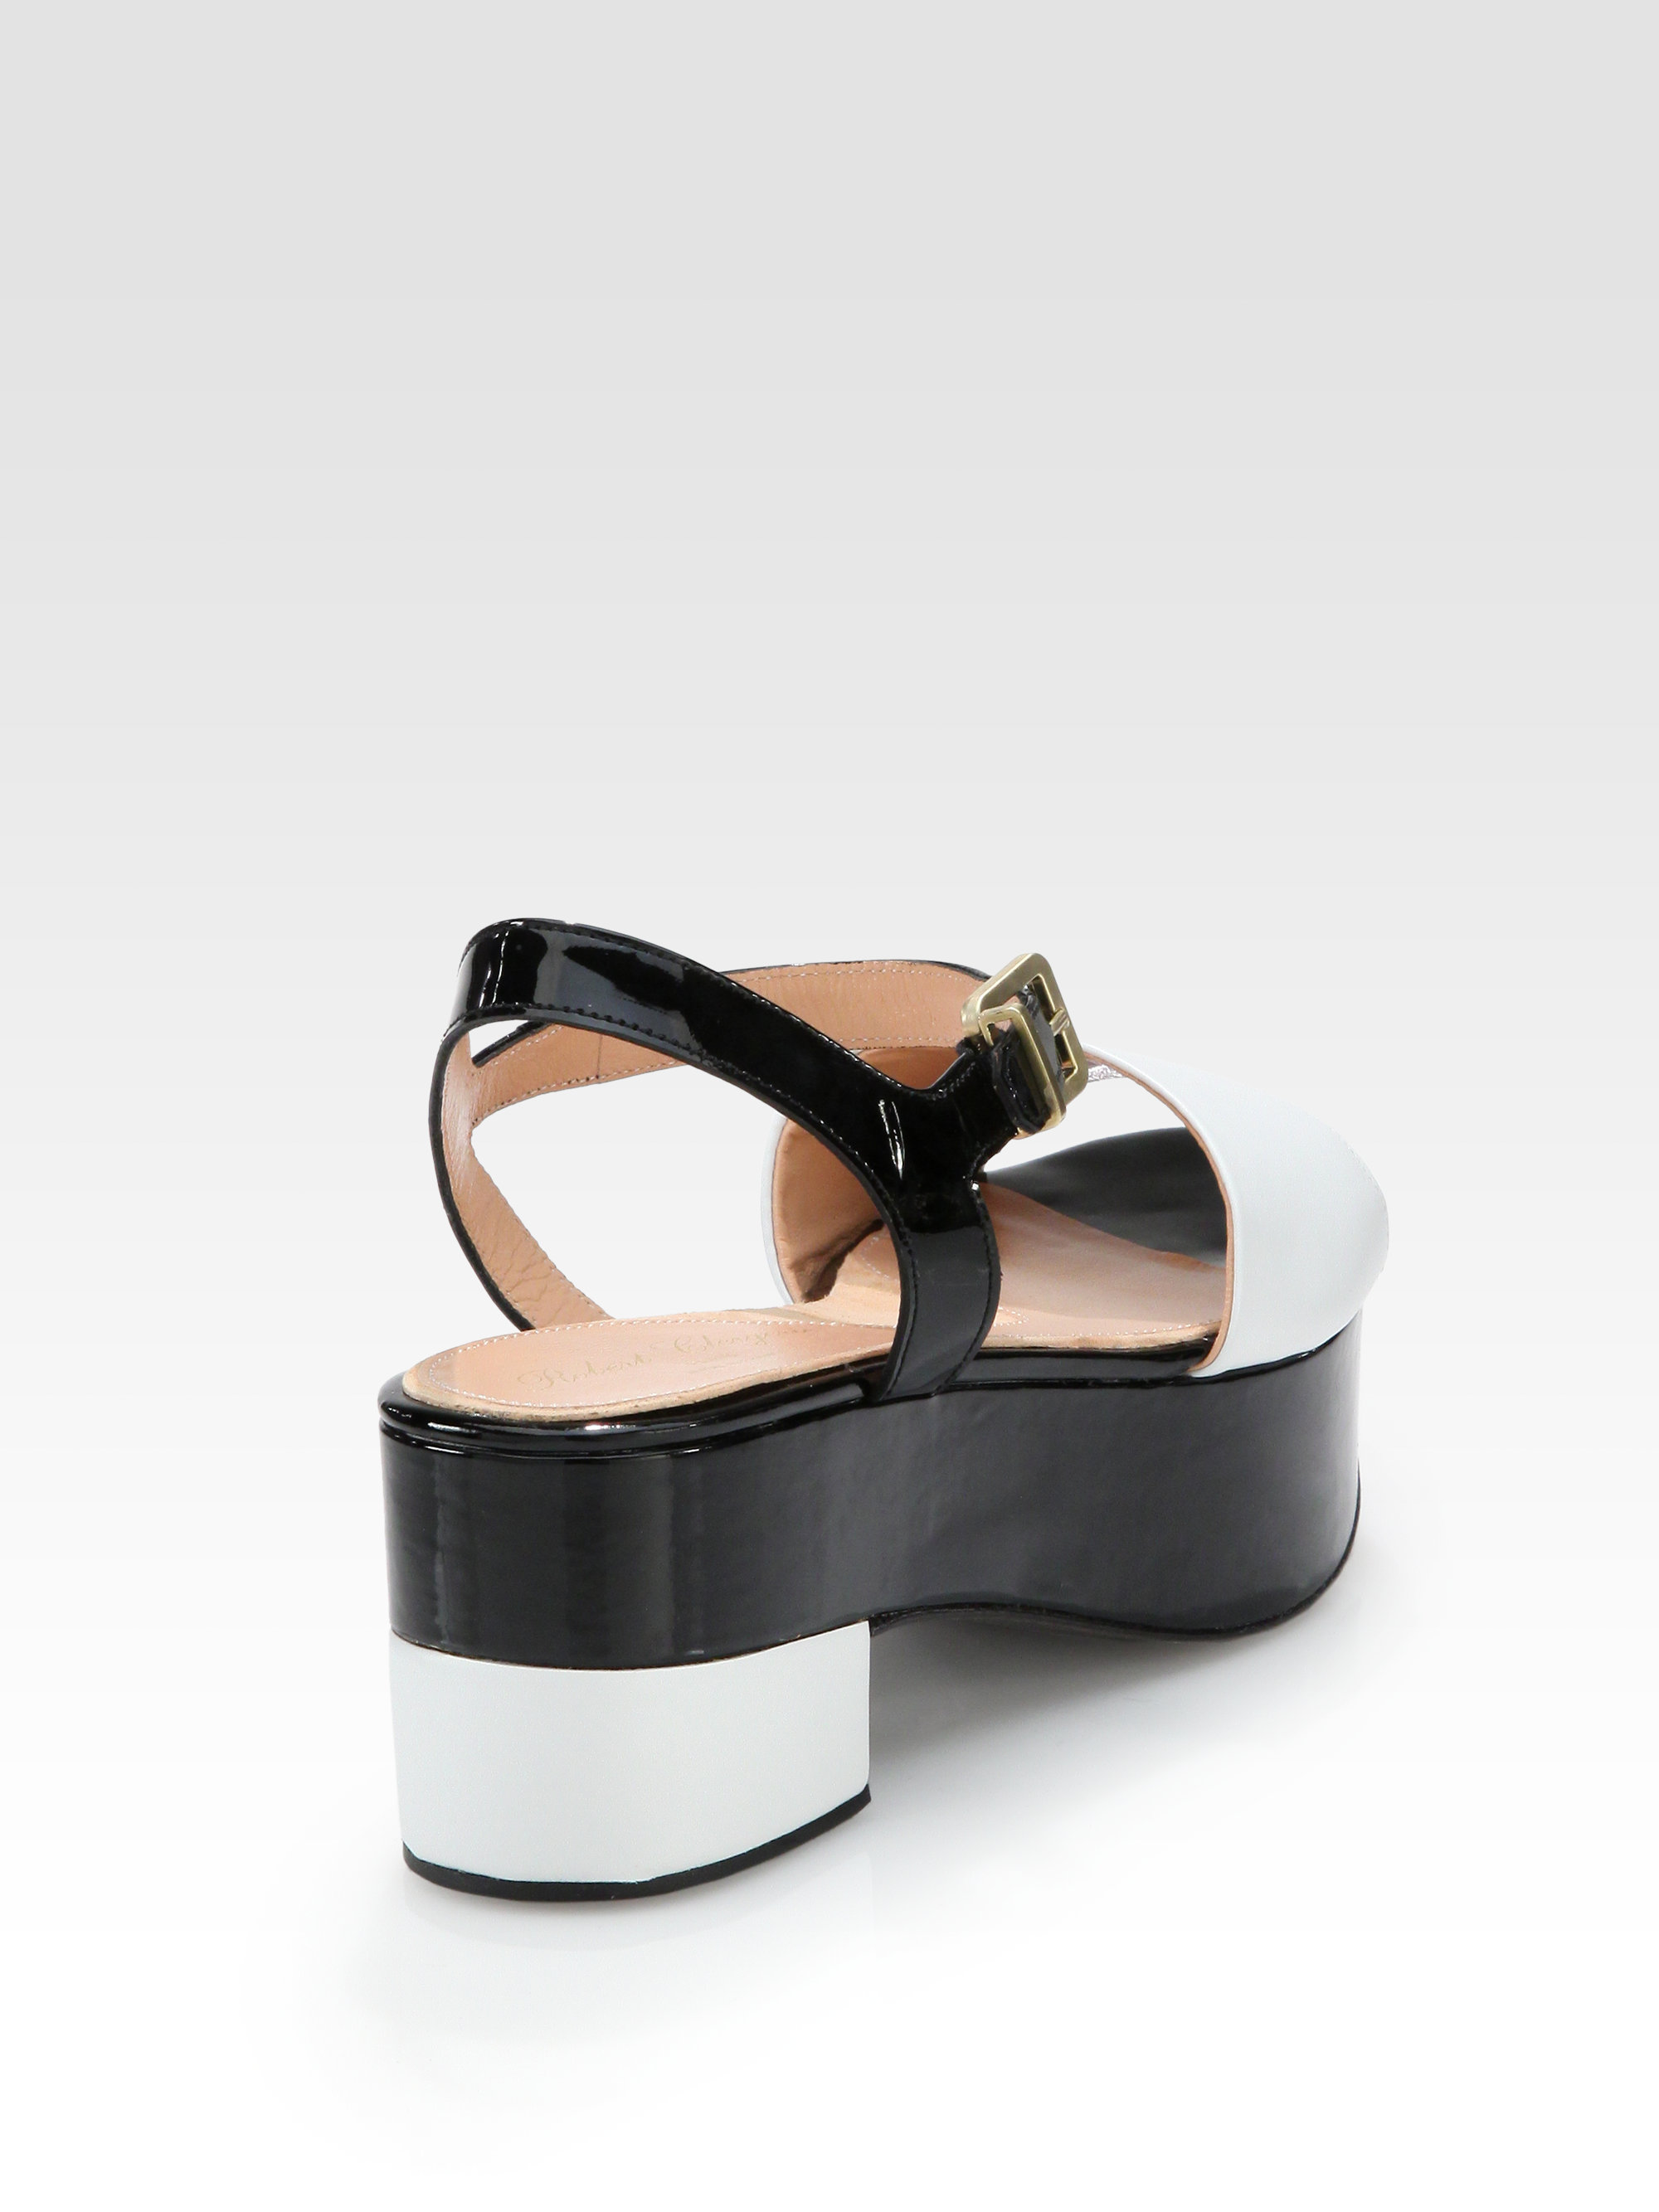 clearance get authentic outlet perfect Robert Clergerie Patent Leather Slingback Sandals deals cheap price manchester great sale online visa payment cheap price 6cF8cF5av